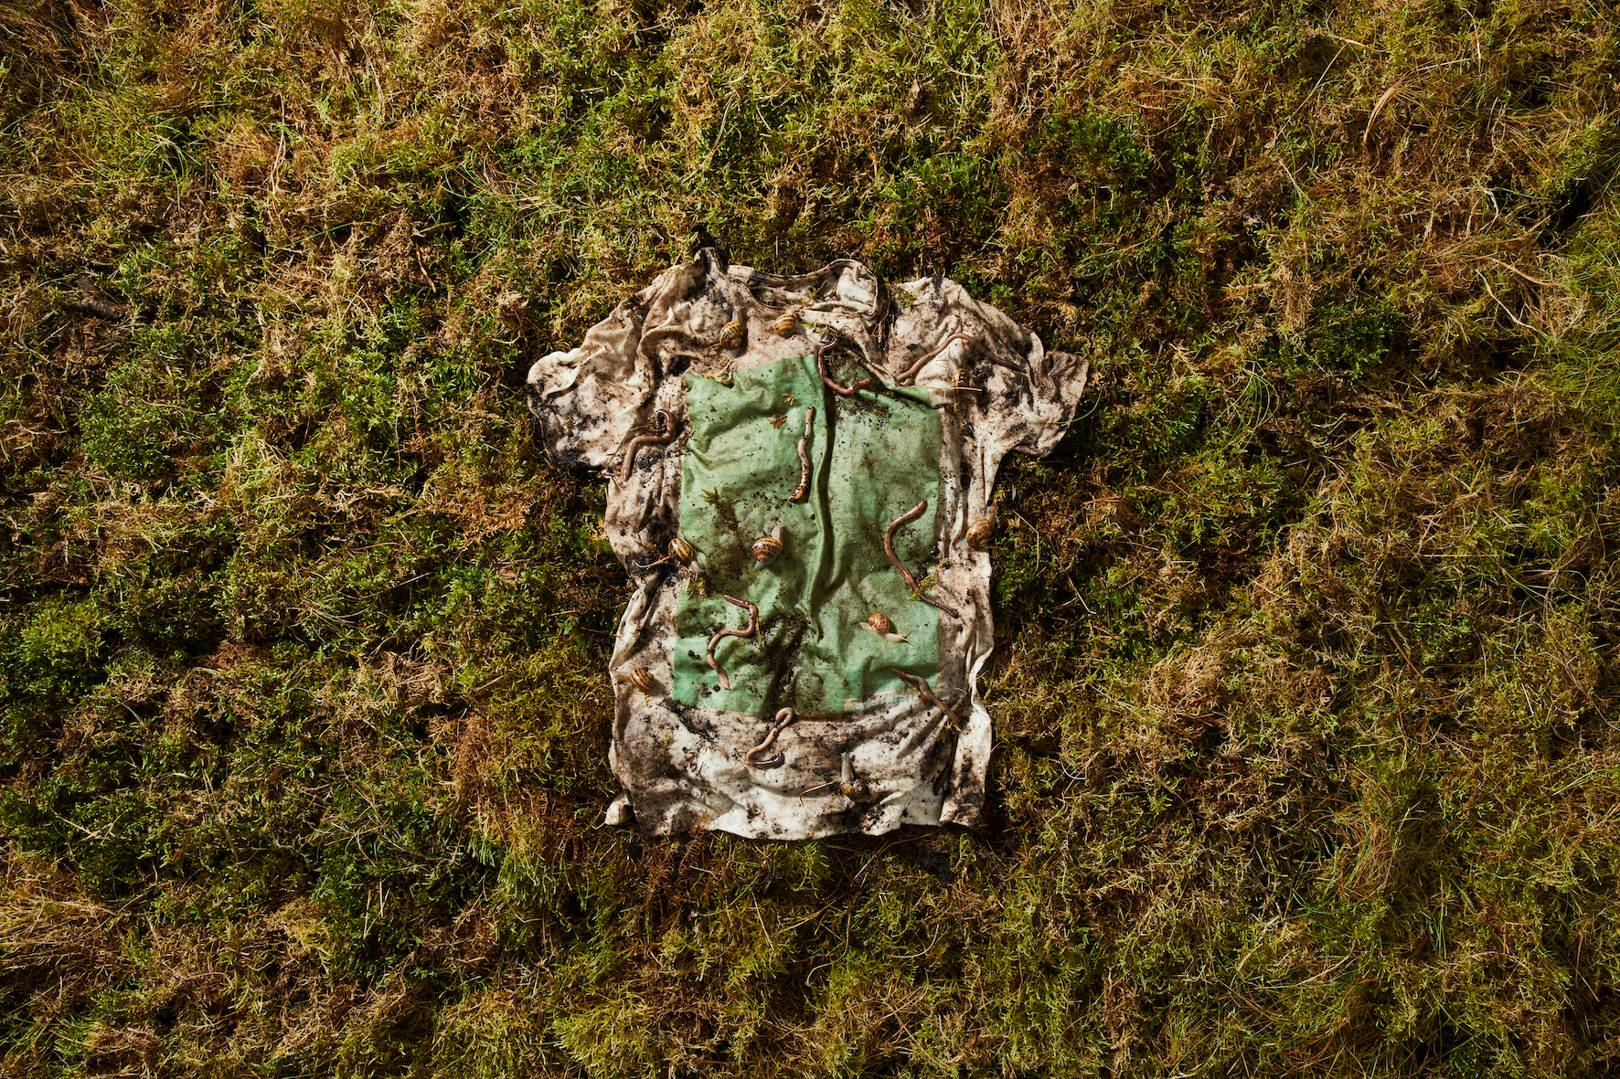 This t-shirt is 100% plant and algae. It biodegrades in 12 weeks